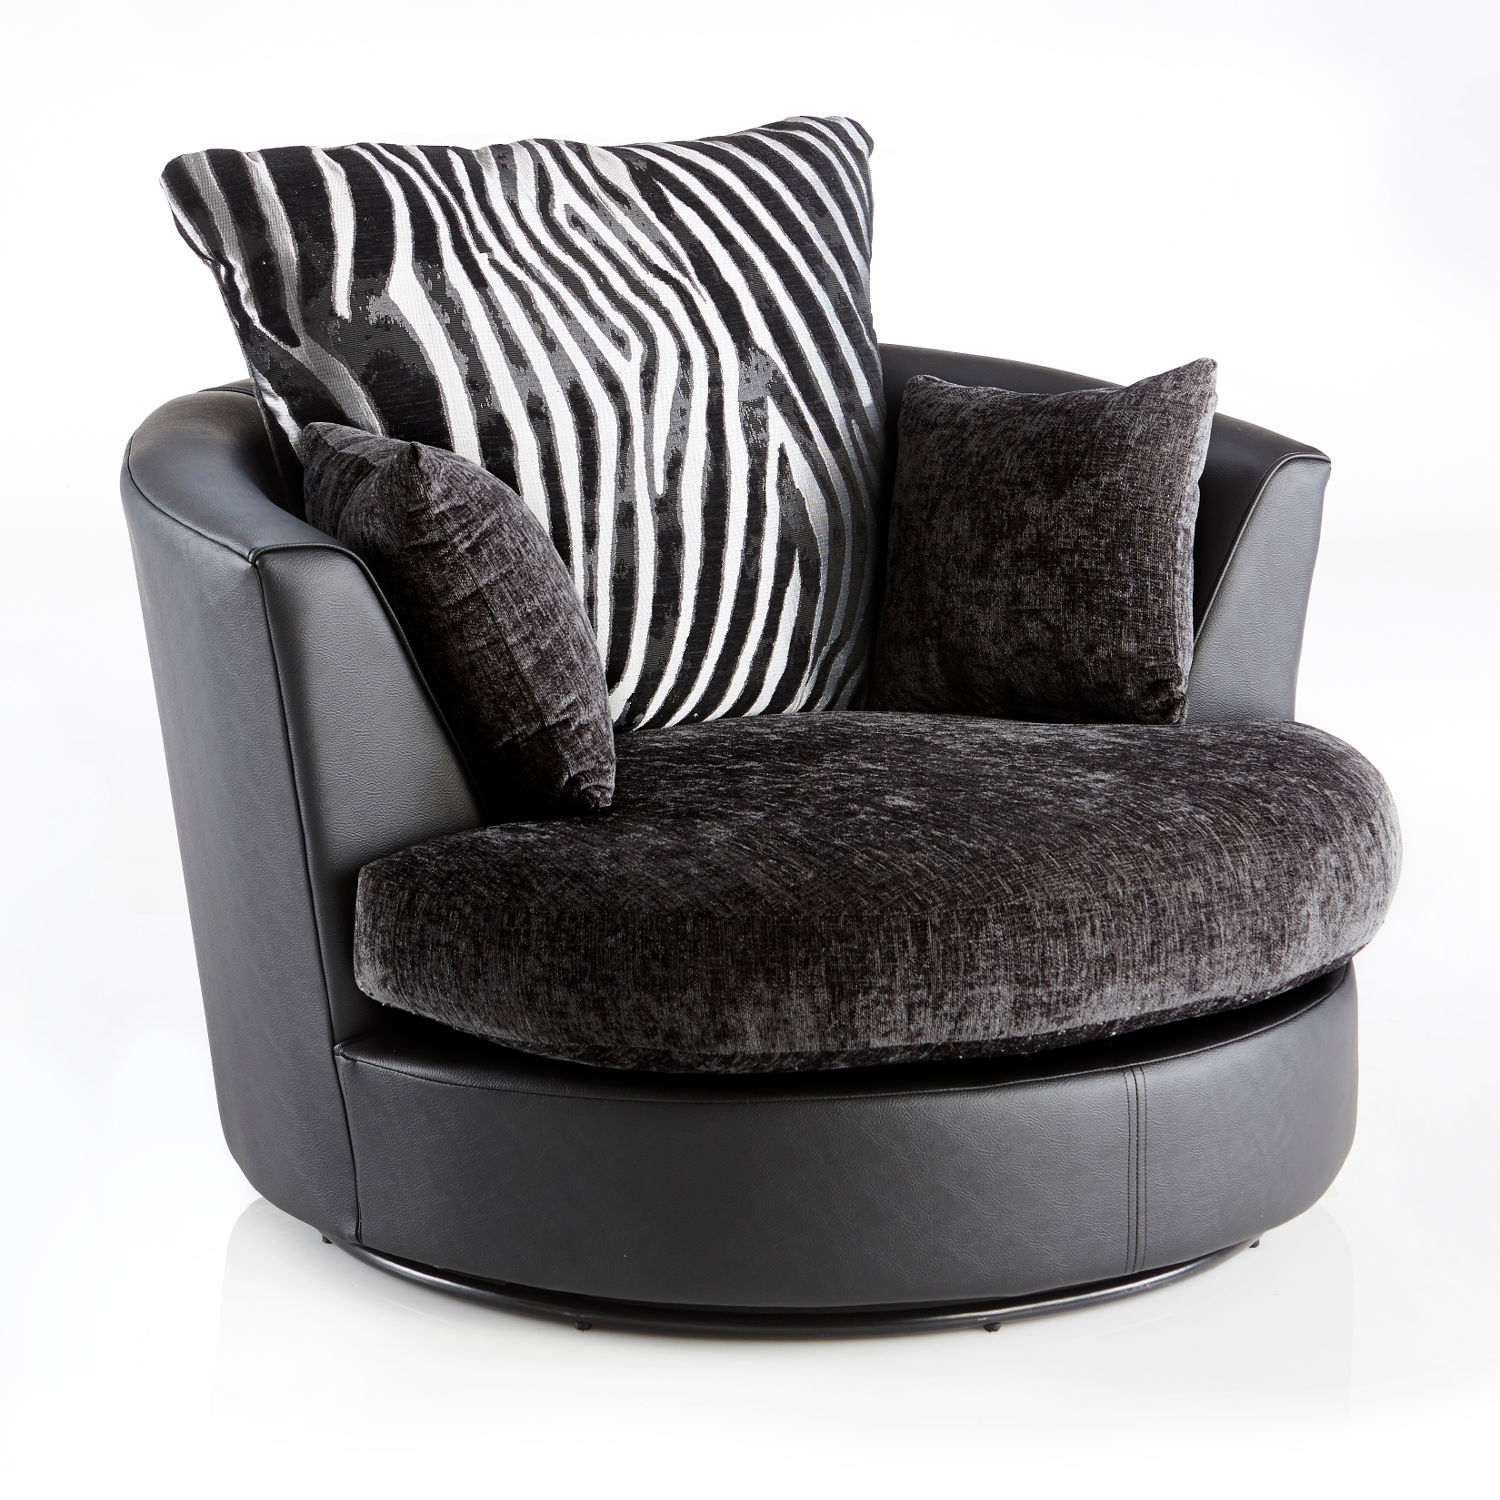 Mulberry Swivel Chair